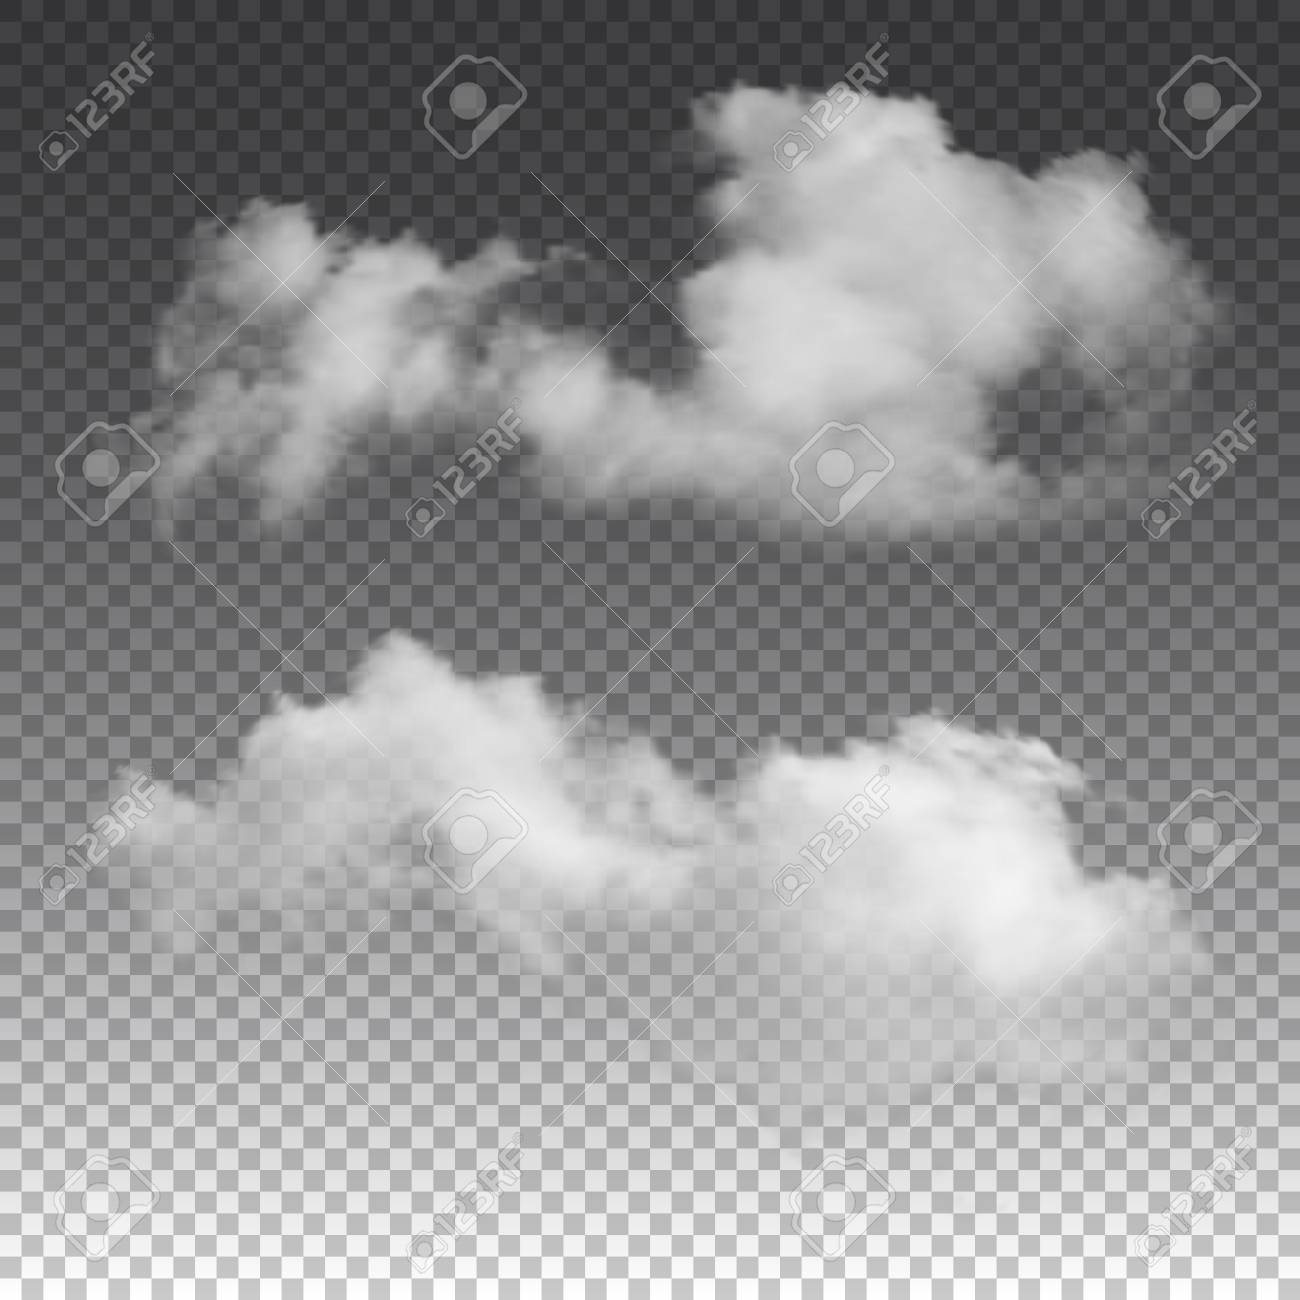 Clouds No Background - Clouds On Transparent Background. Vector Realistic Isolated Cloud ...